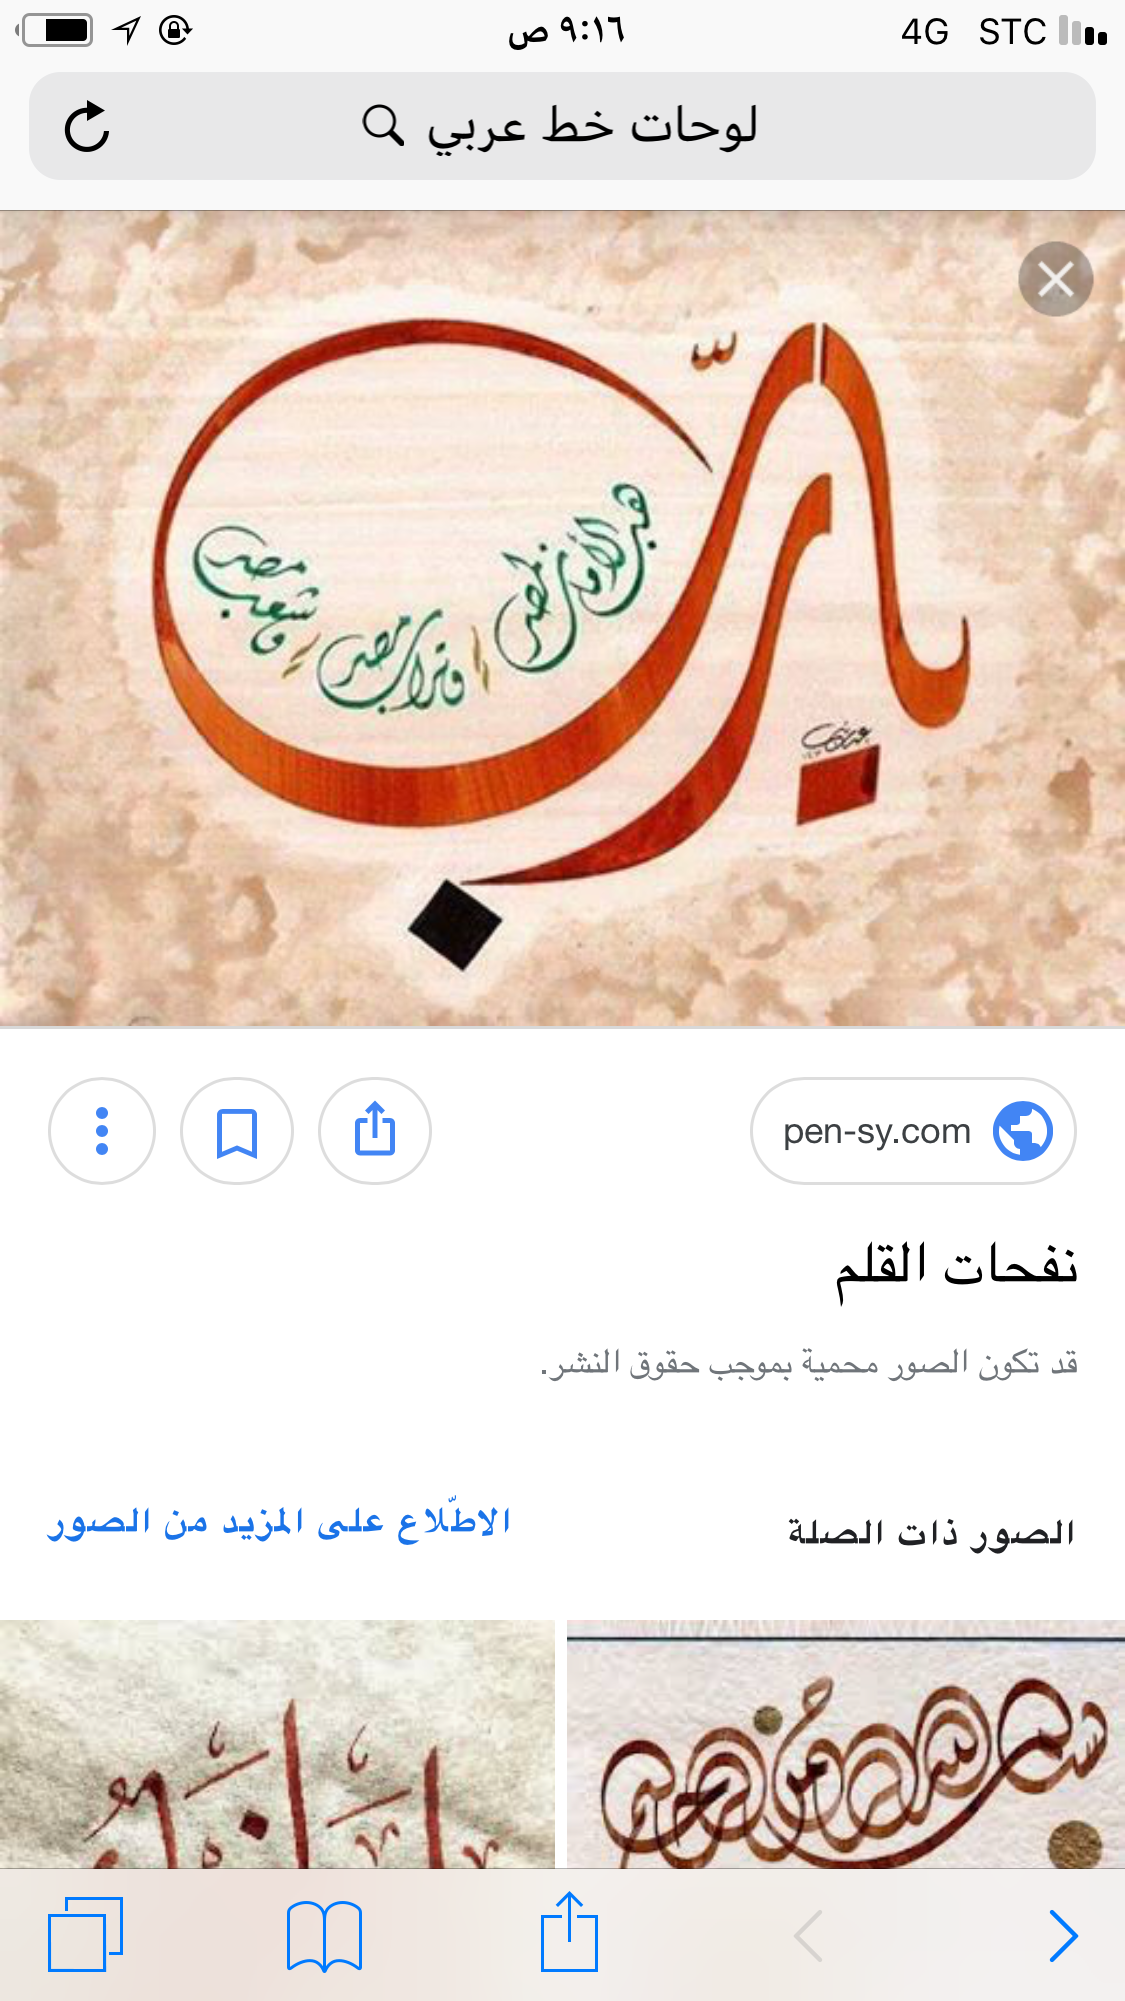 Pin by Cvbnm on خط (With images) Calligraphy, Arabic